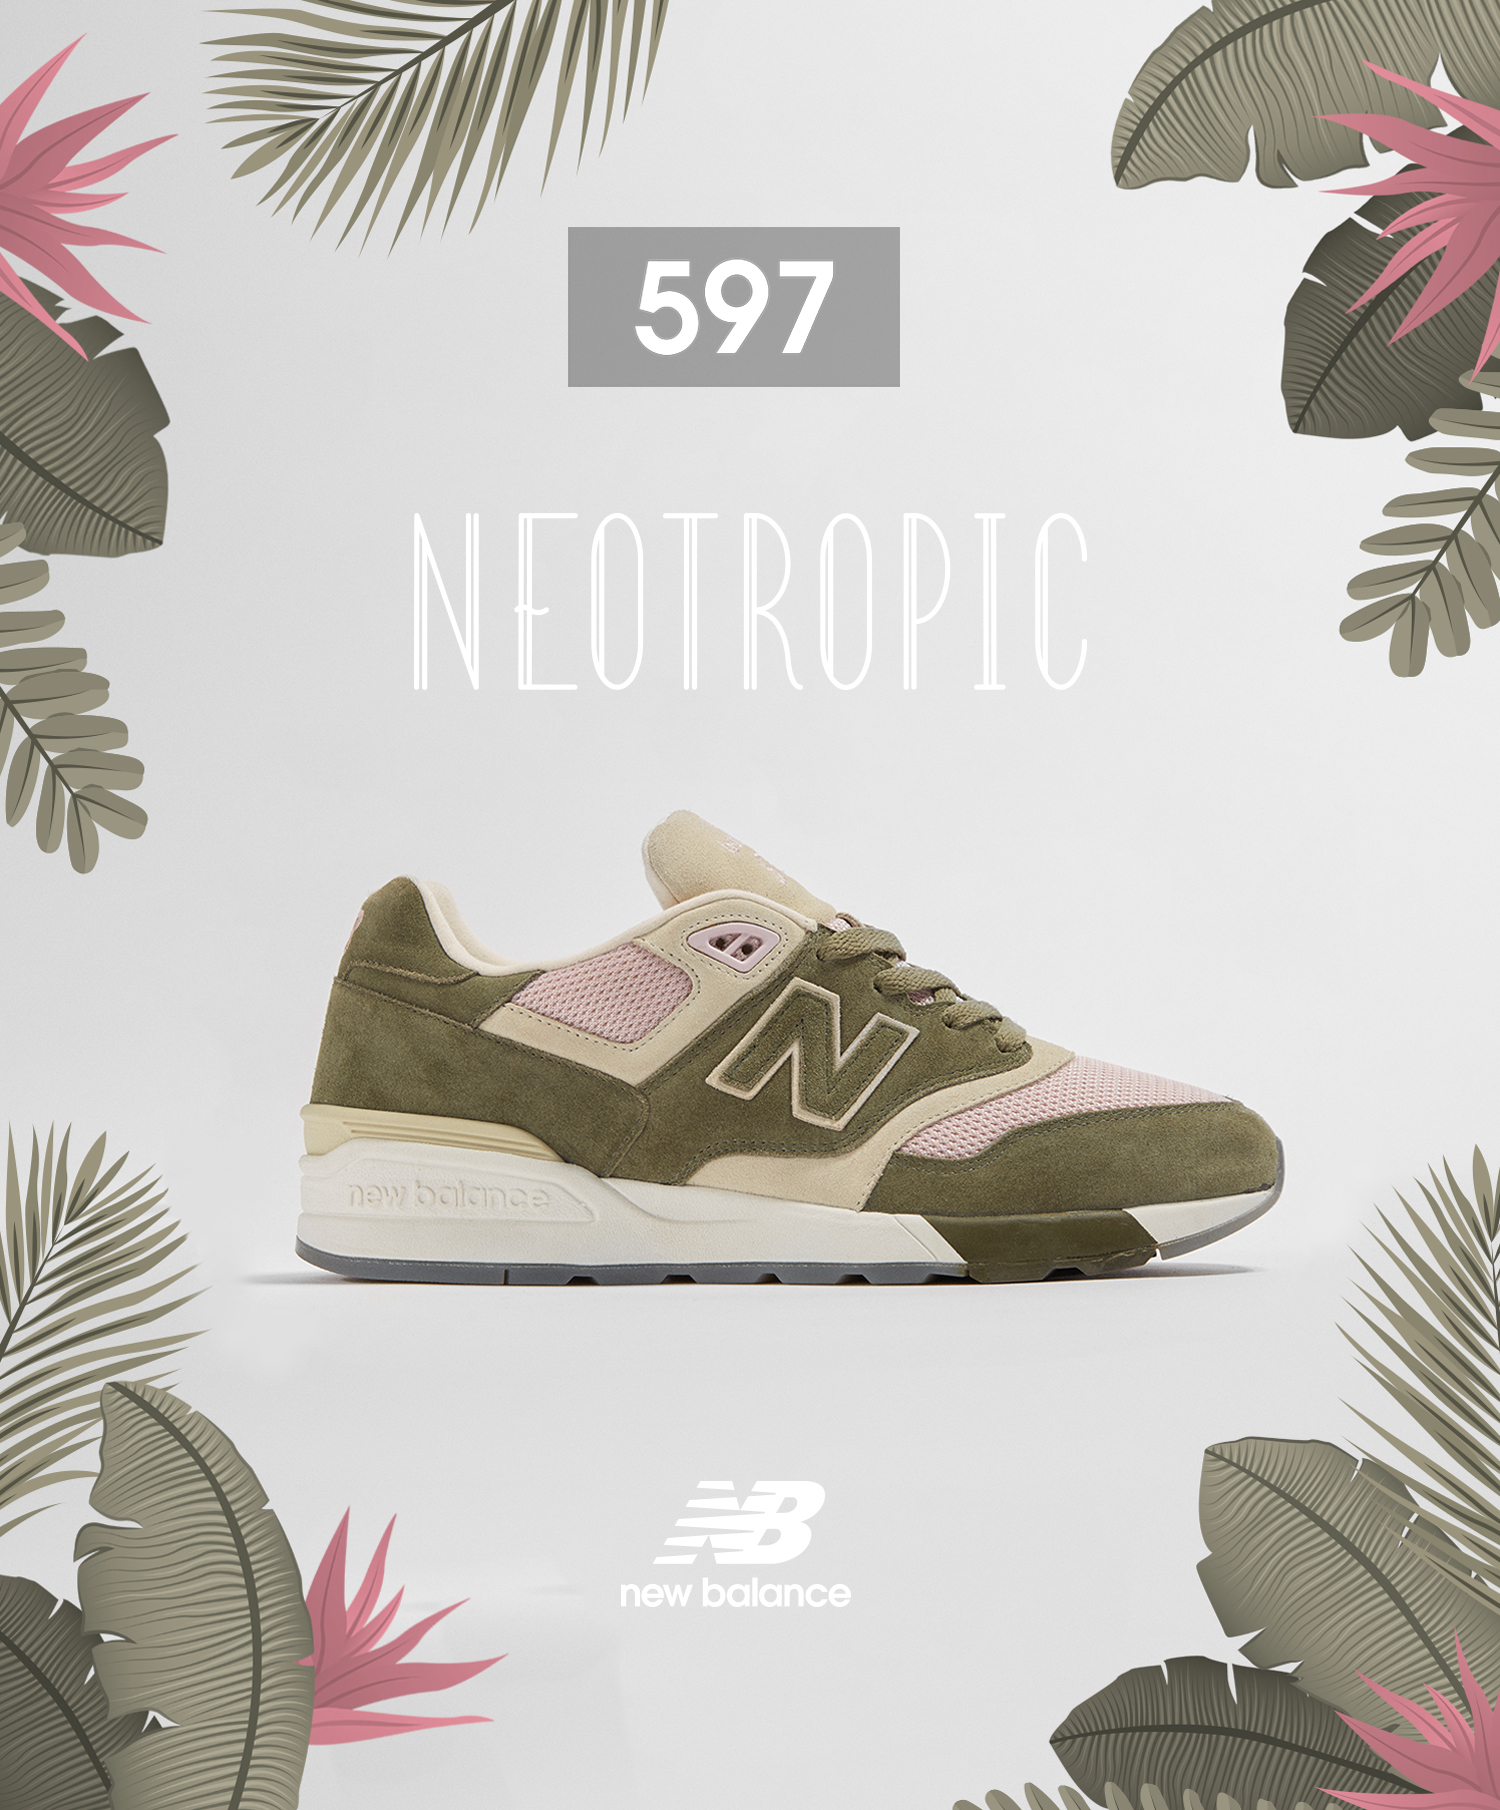 competitive price fd438 4a978 New Balance 597 'Neotropic' - size? Exclusive - size? blog